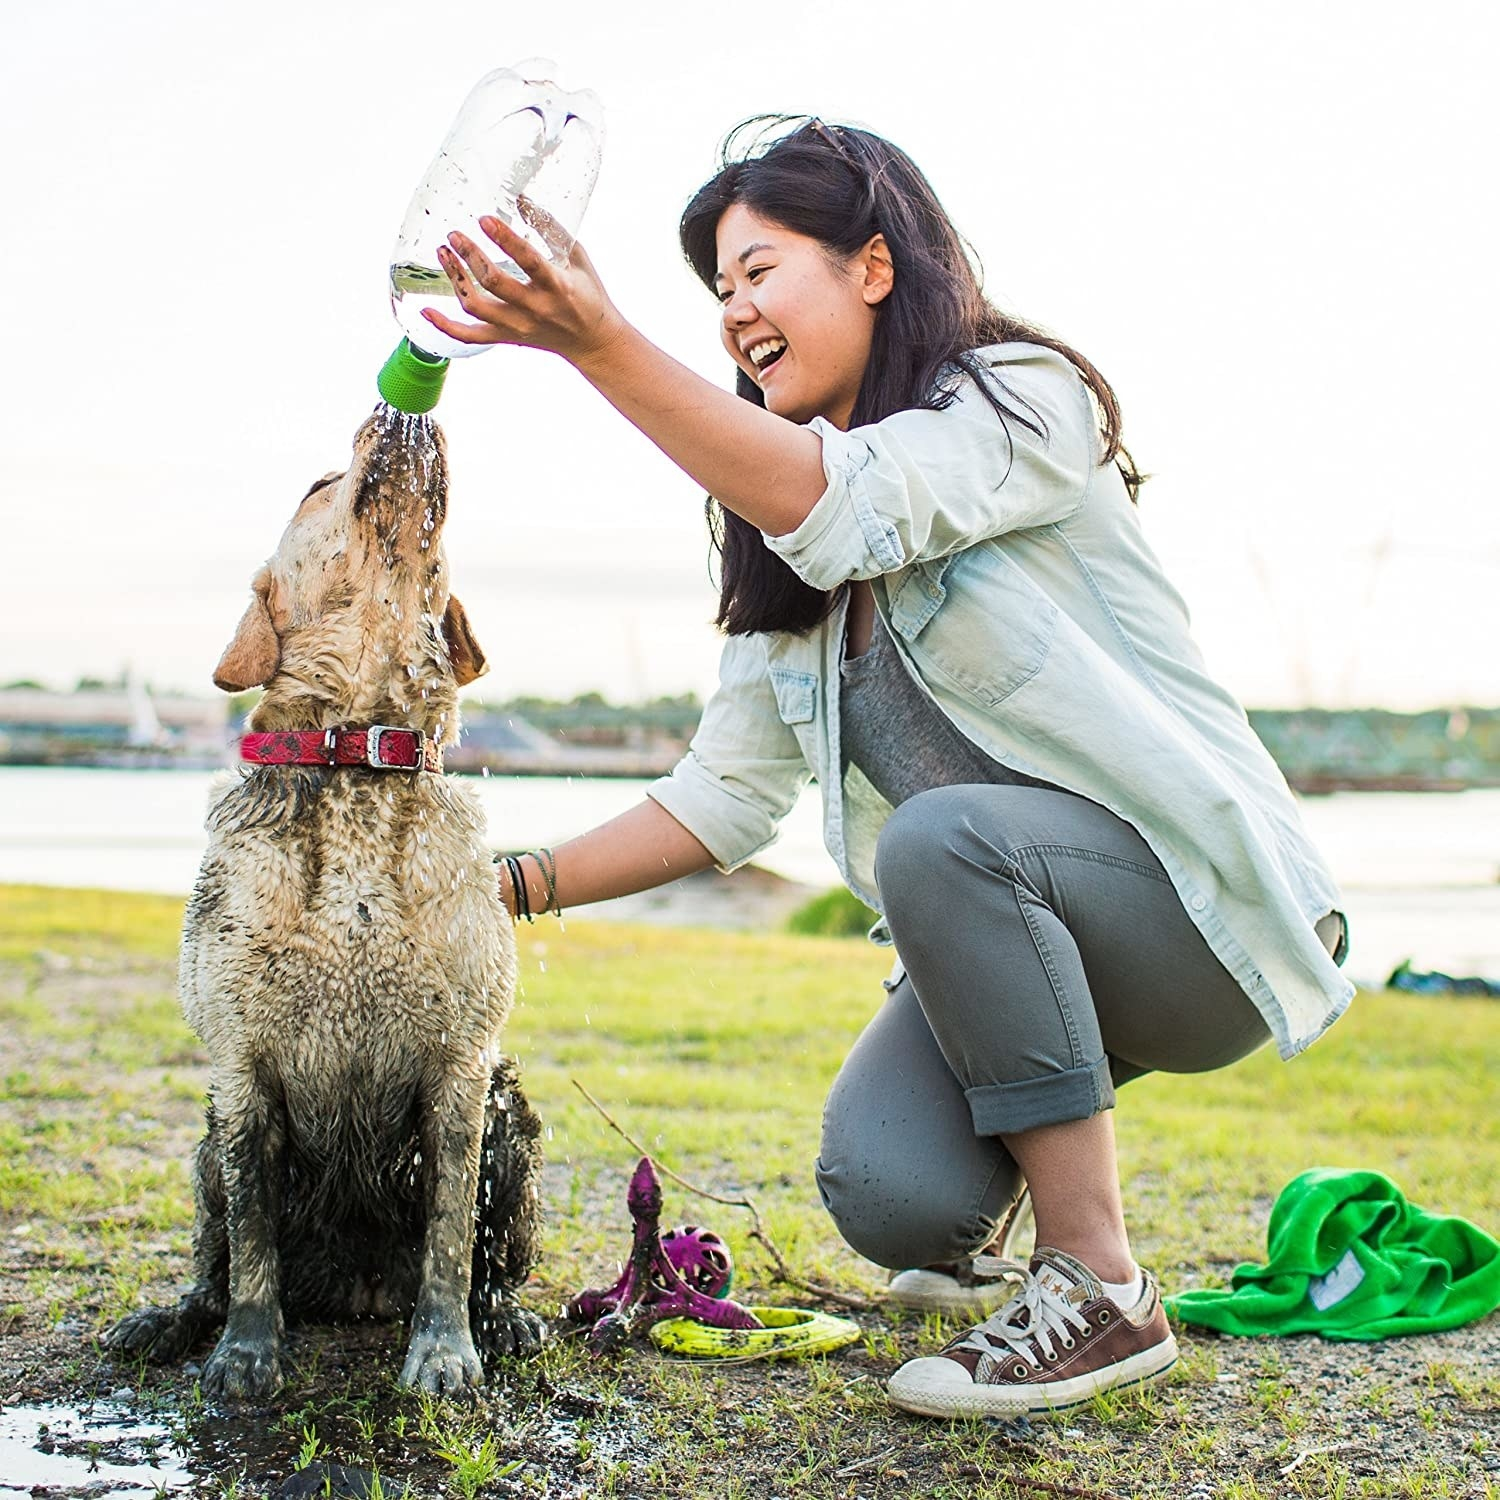 A person giving their muddy dog a shower with a water bottle